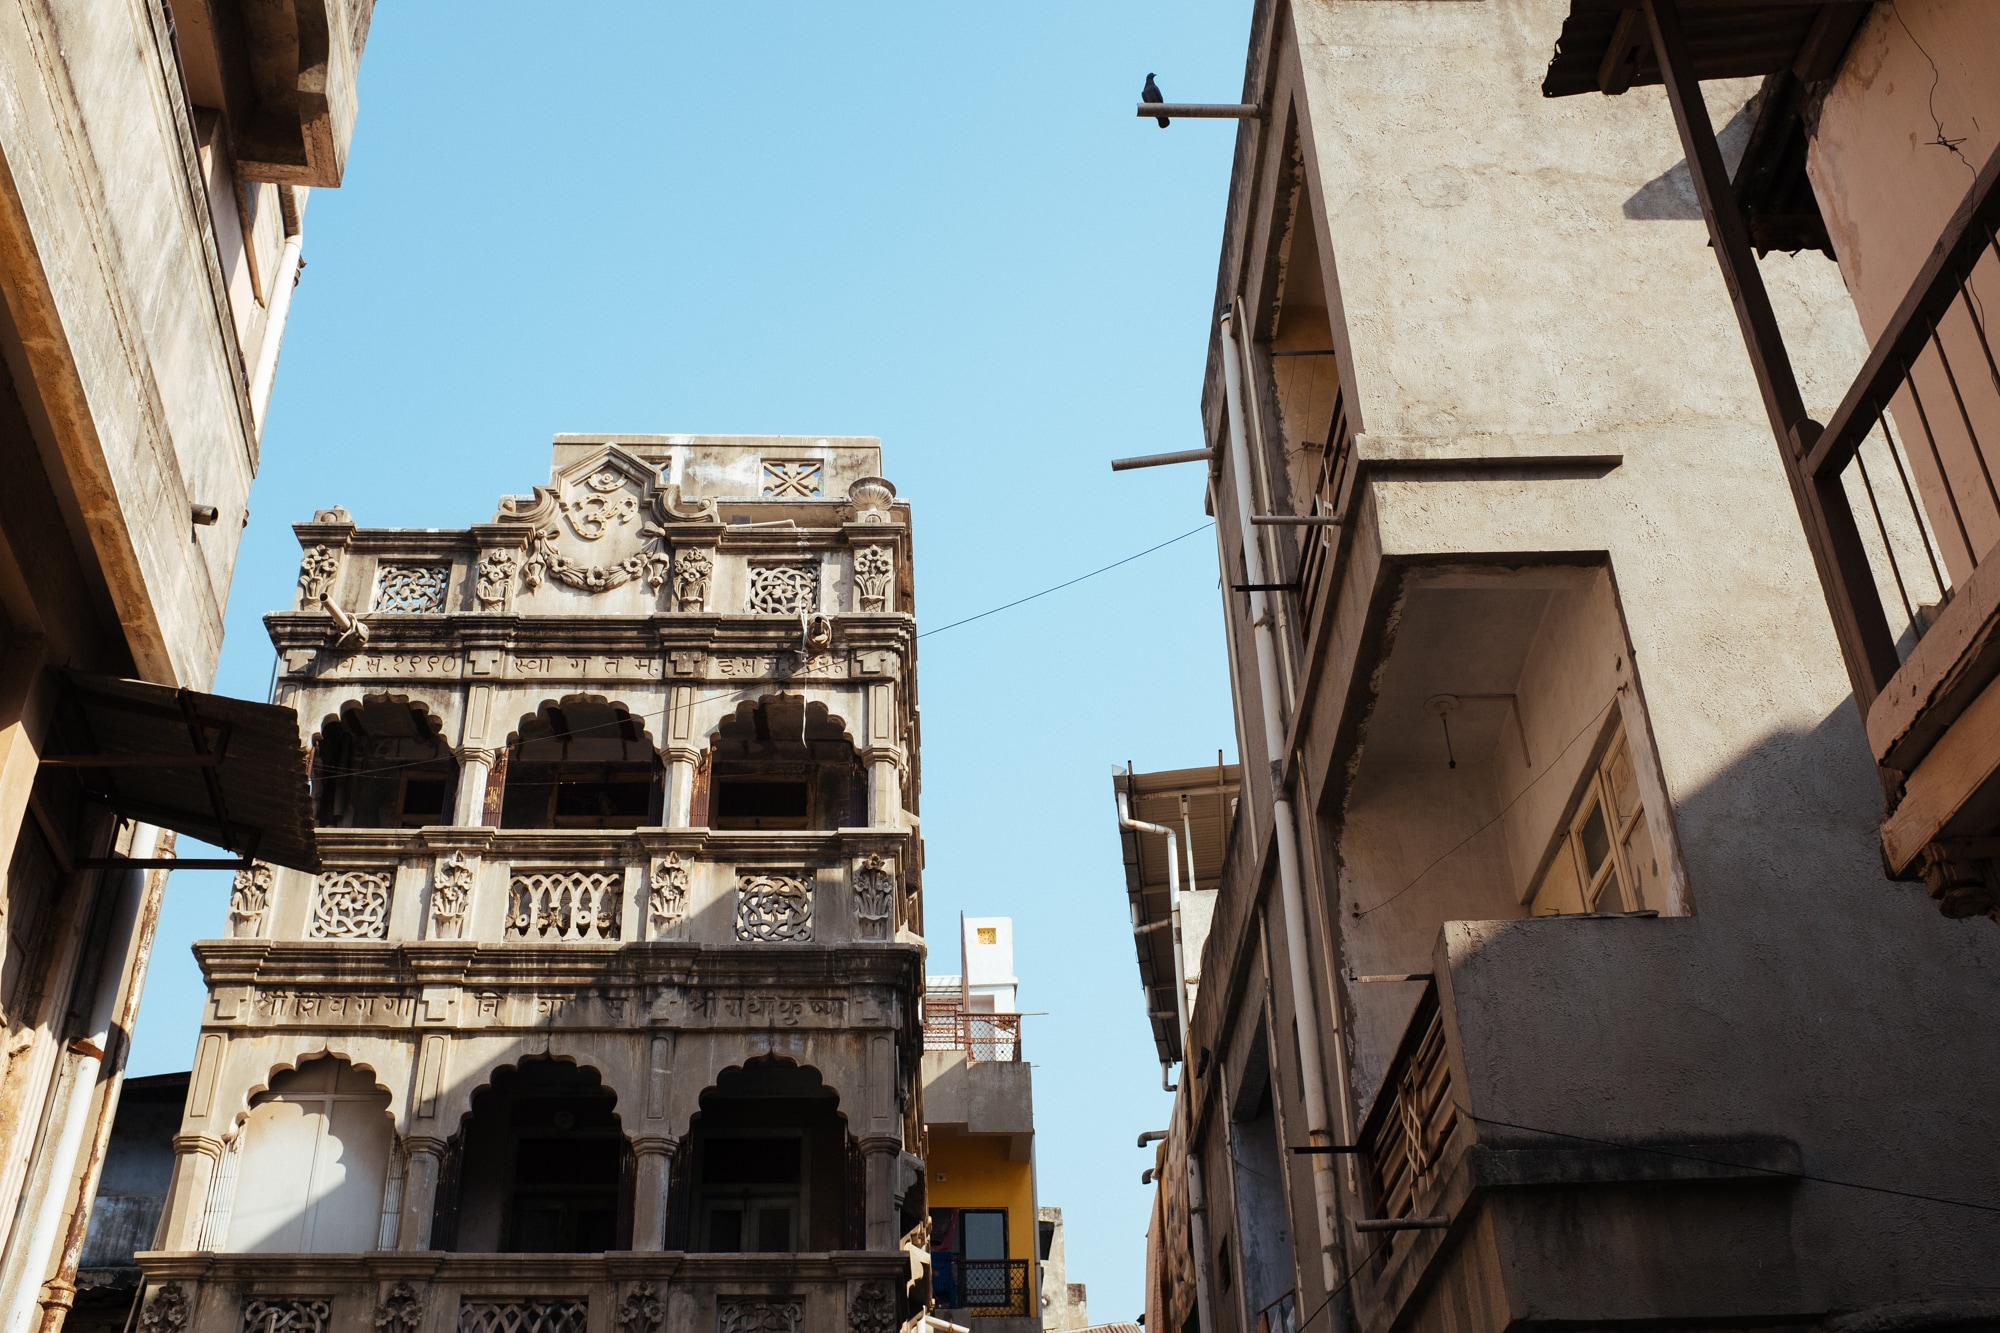 A heritage building in Ahmedabad.